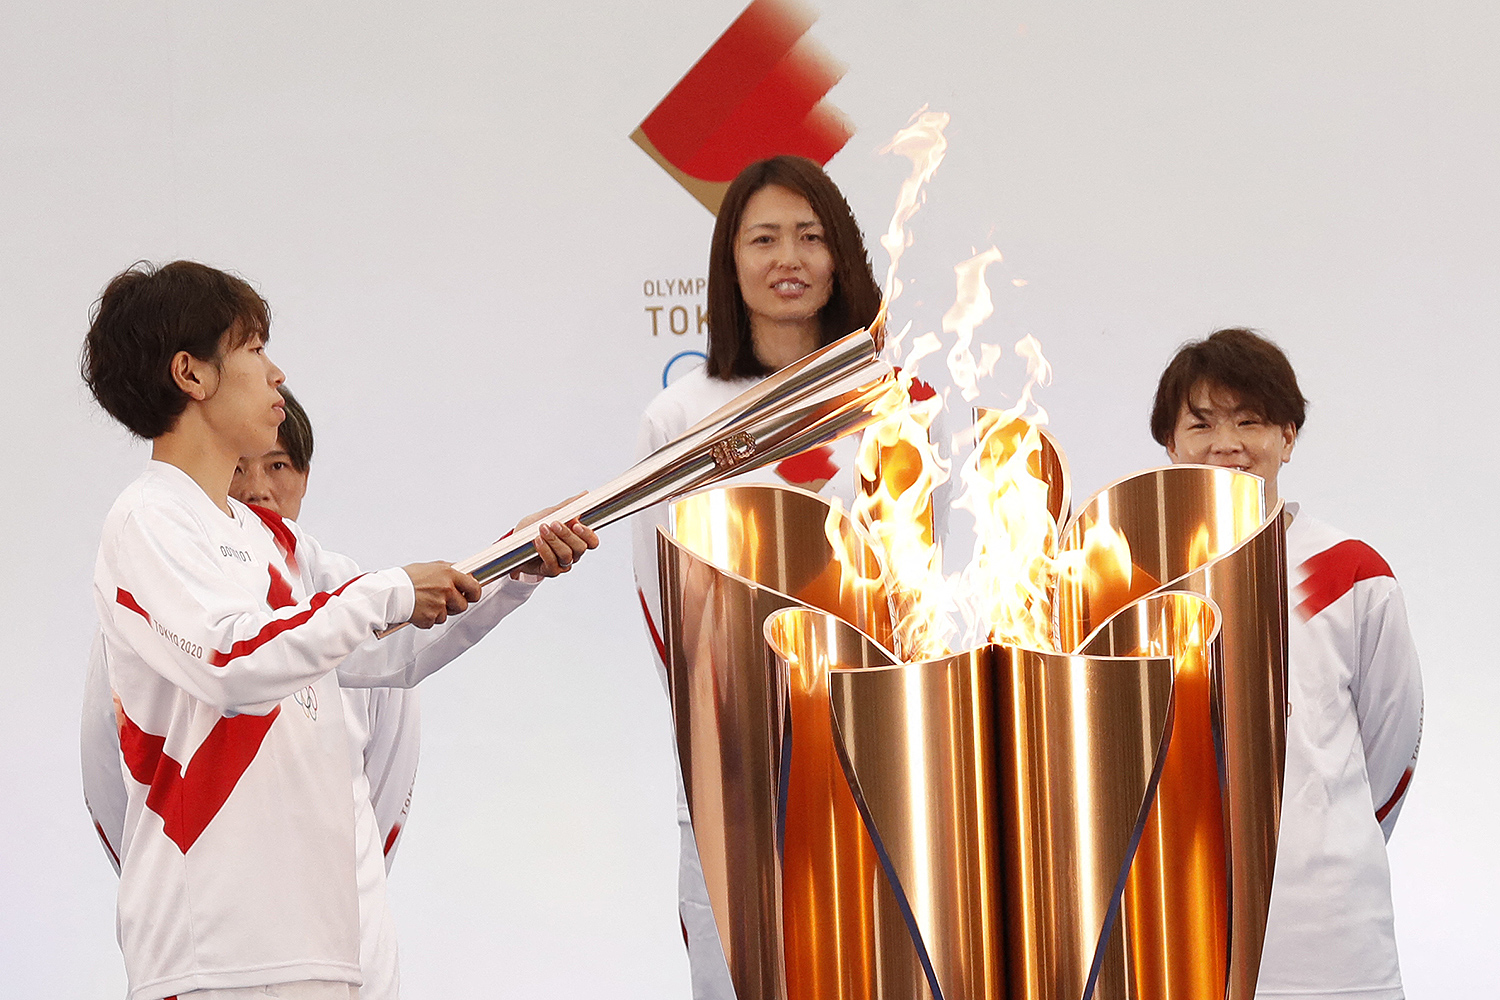 Tokyo Olympic torch relay